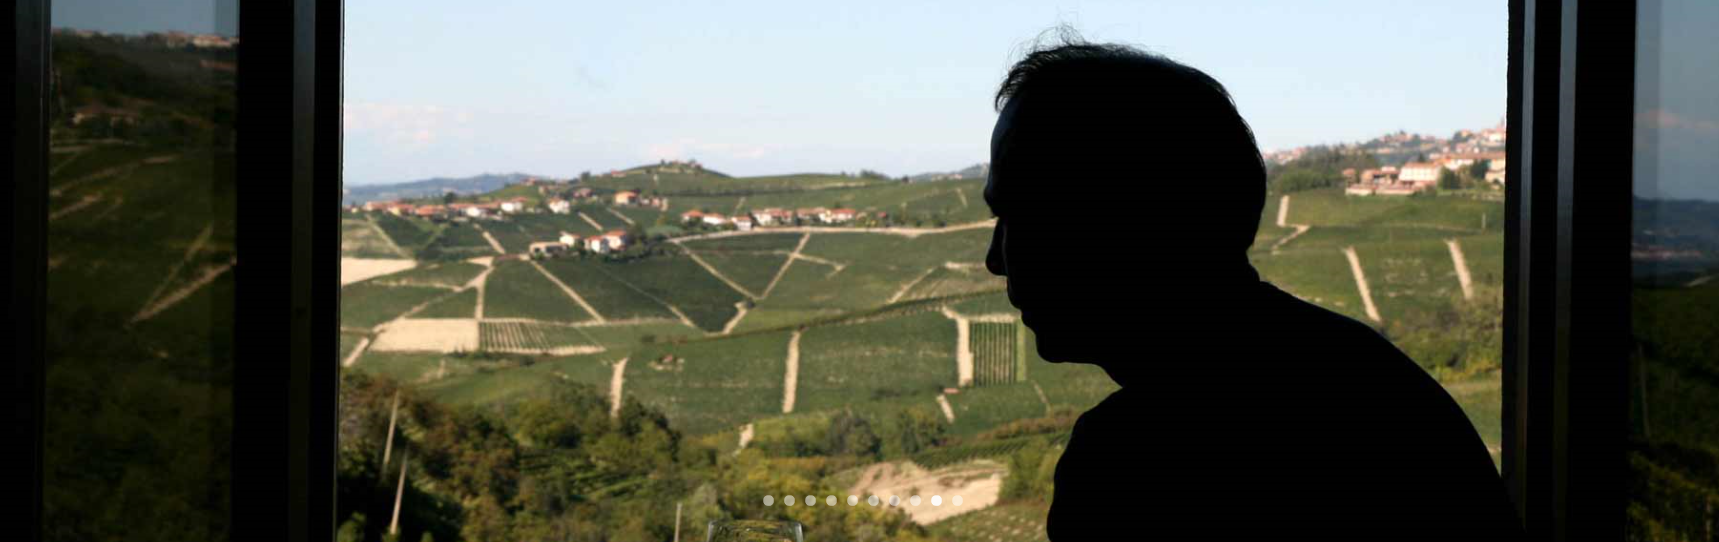 Weingut-Paolo-Conterno-2